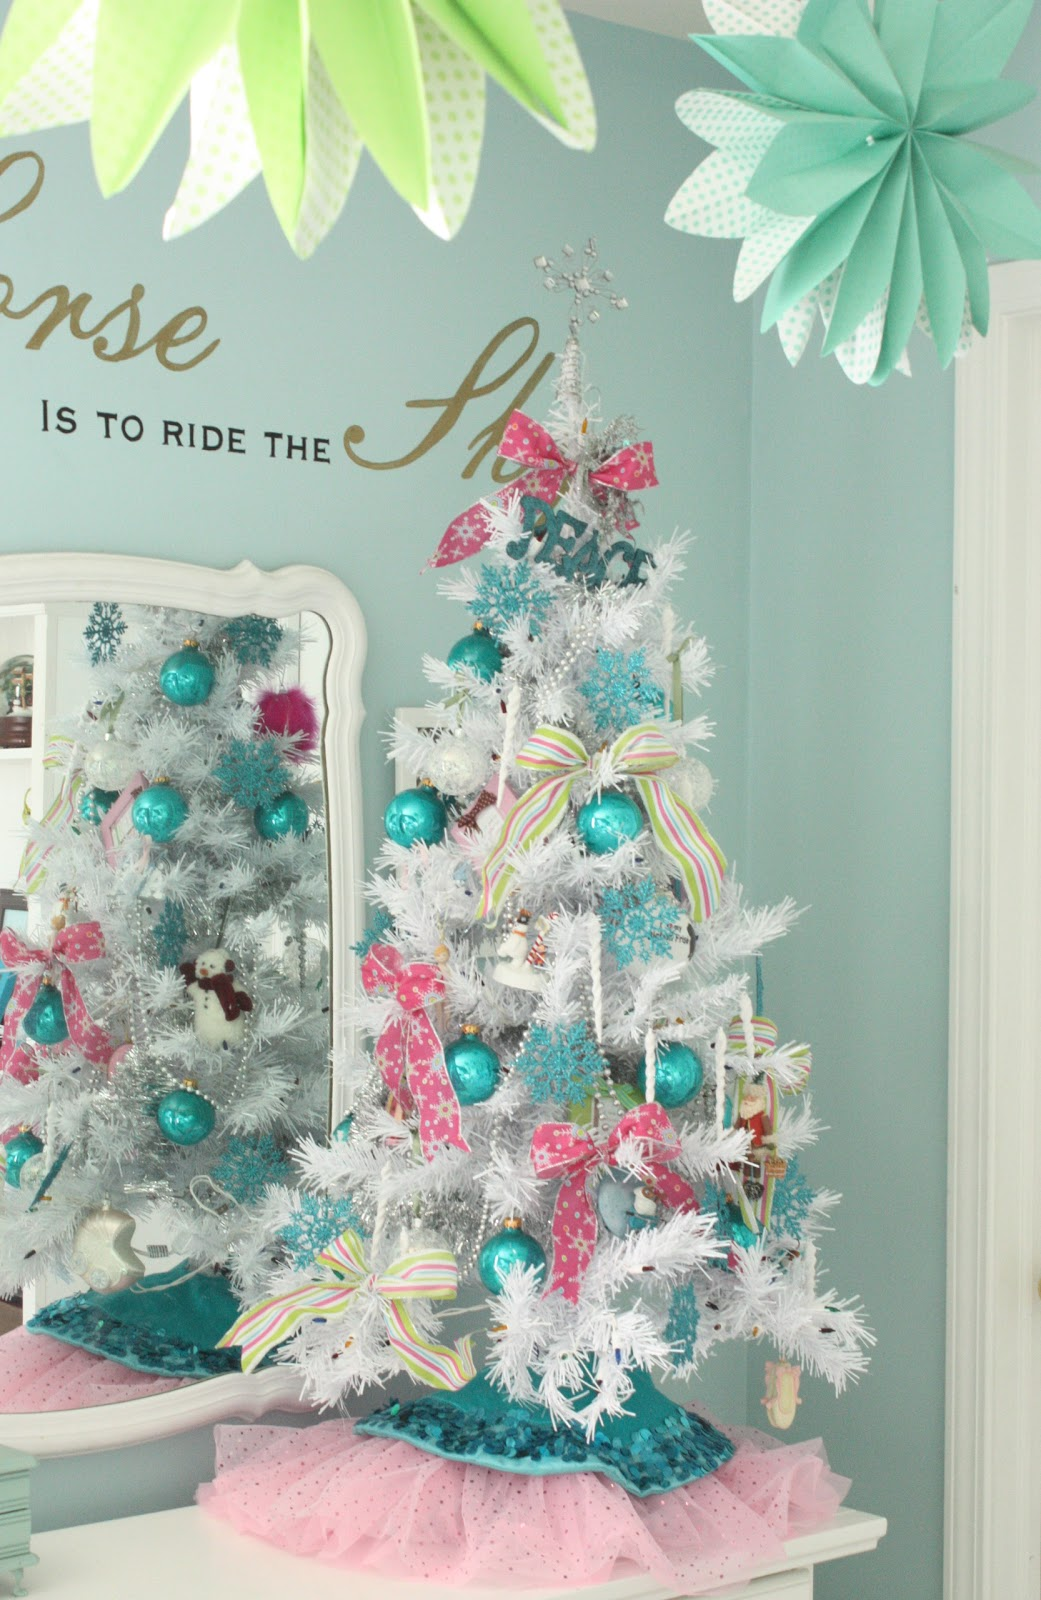 Kids Bedroom Decorating Ideas On A Budget The Yellow Cape Cod Holiday Home Series Let The Kids